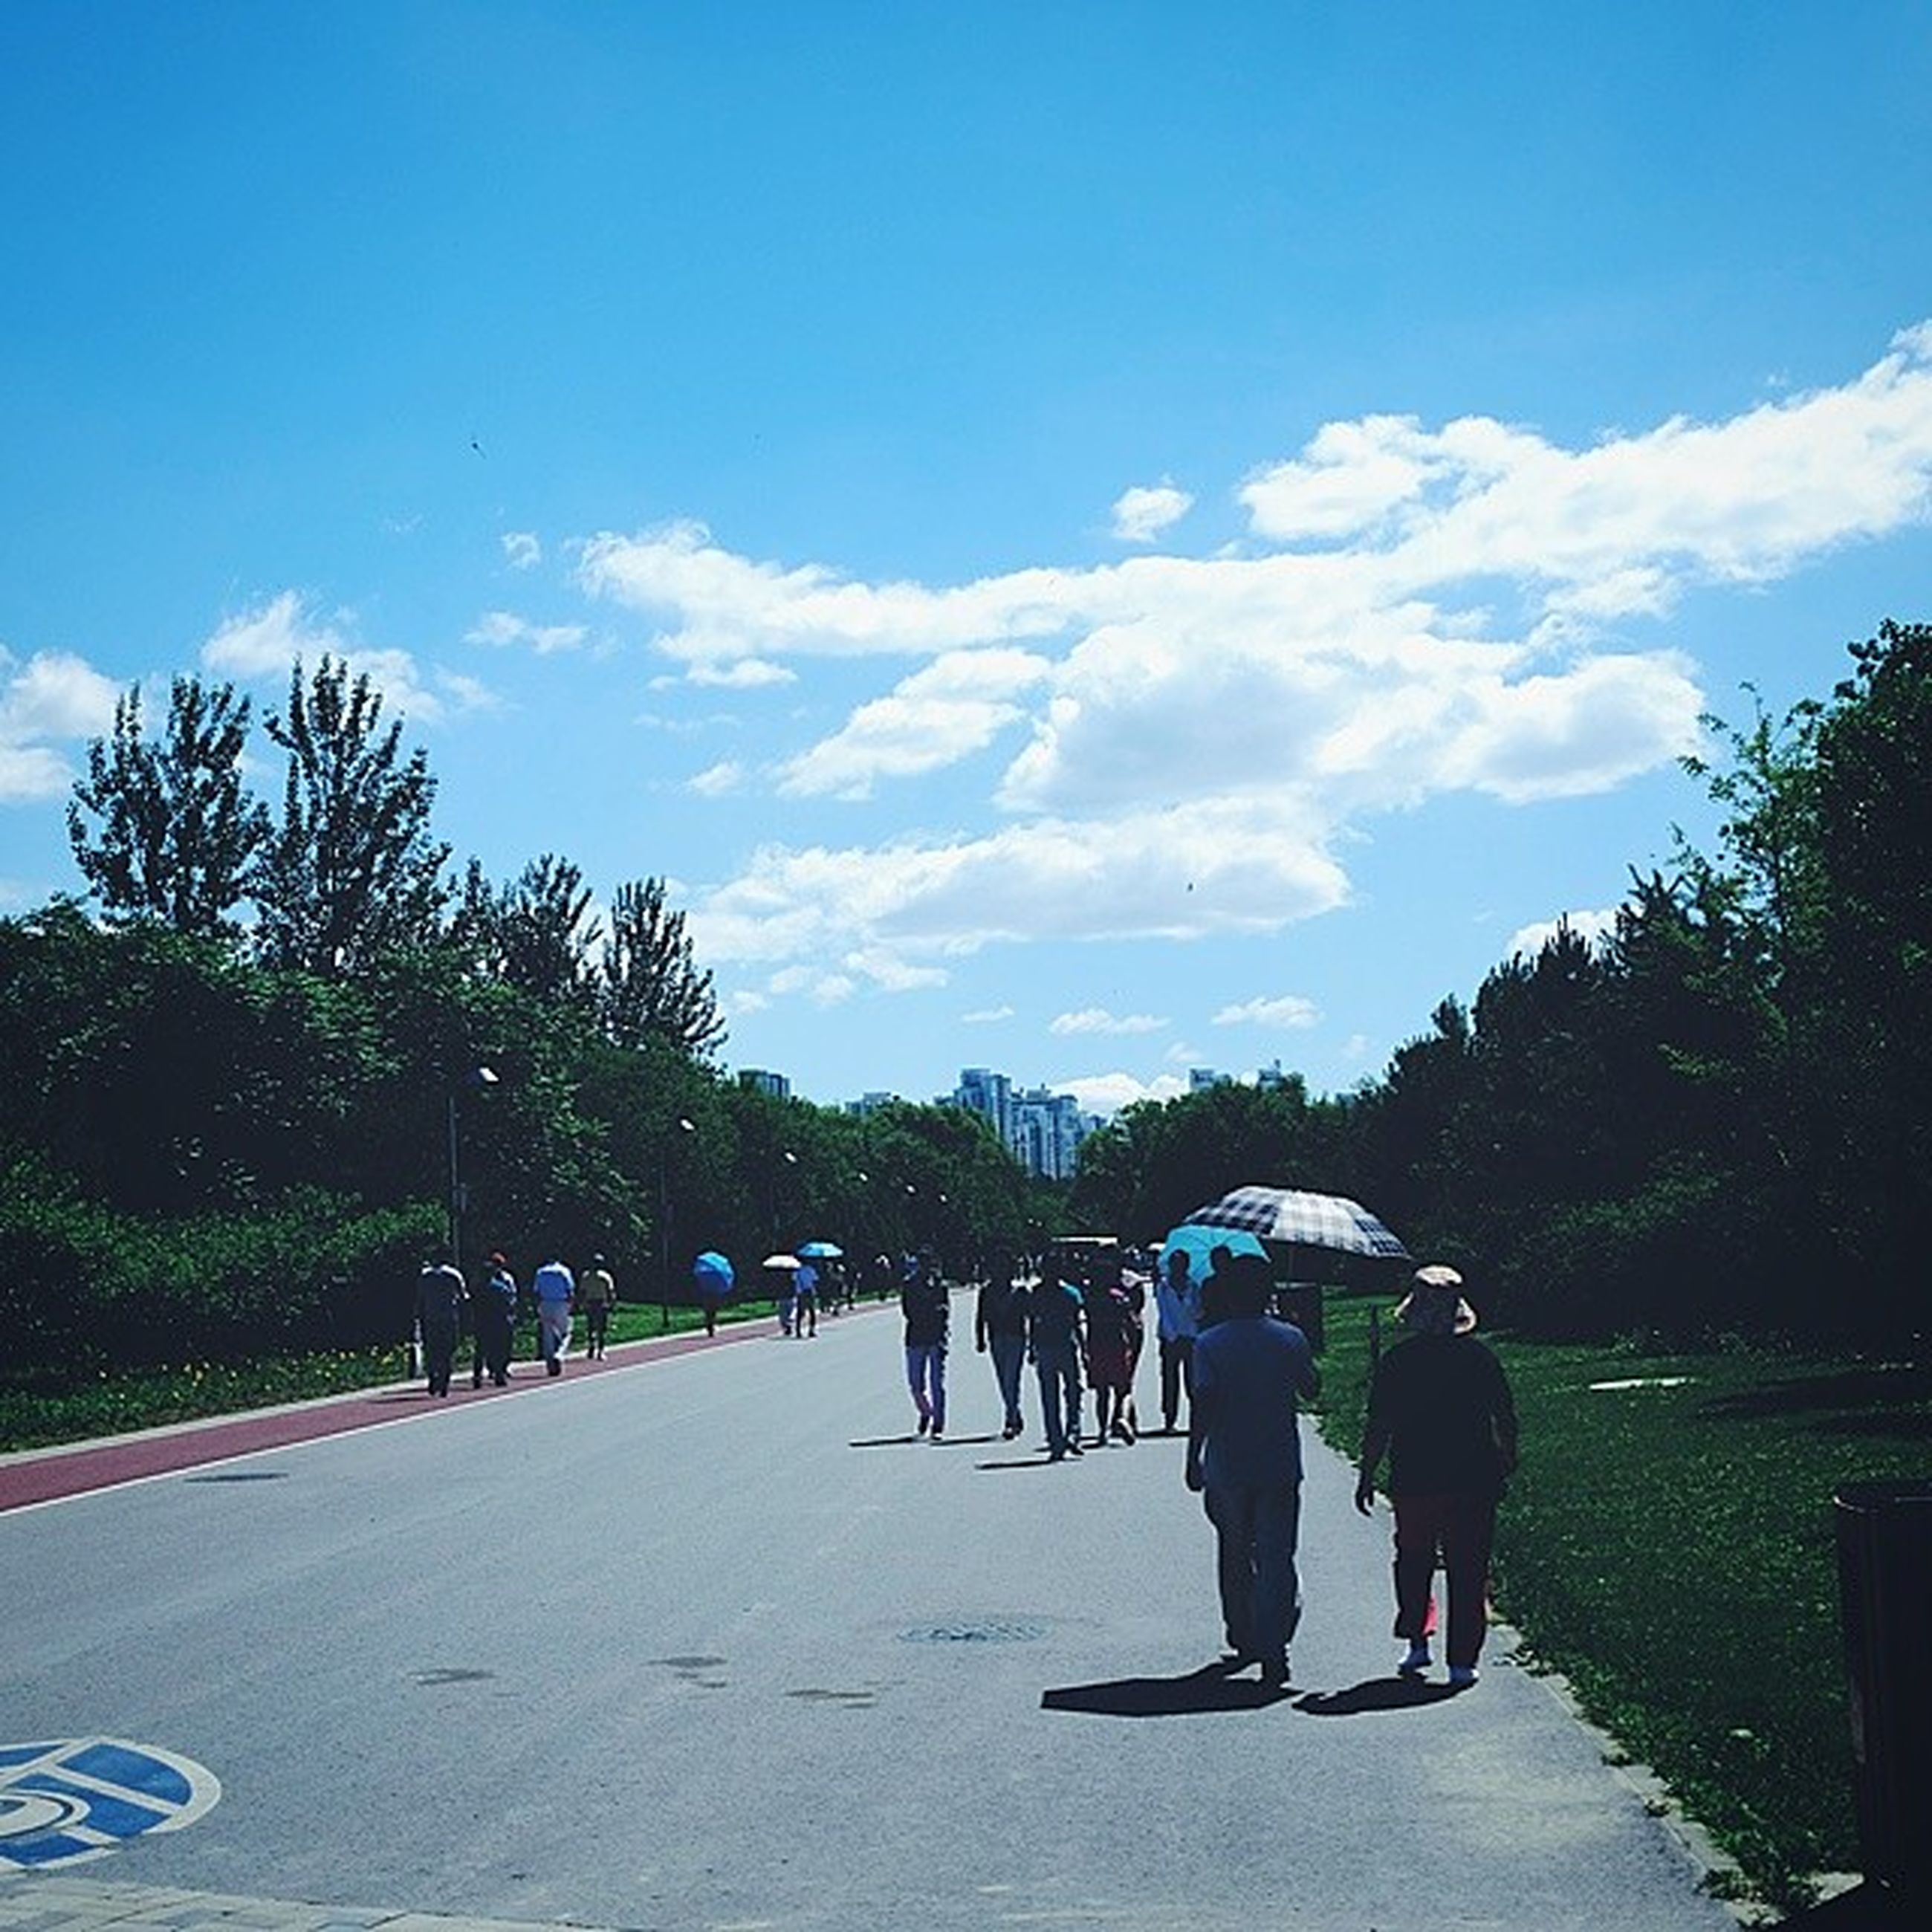 tree, sky, men, lifestyles, leisure activity, person, walking, togetherness, full length, rear view, the way forward, cloud - sky, road, cloud, transportation, blue, large group of people, day